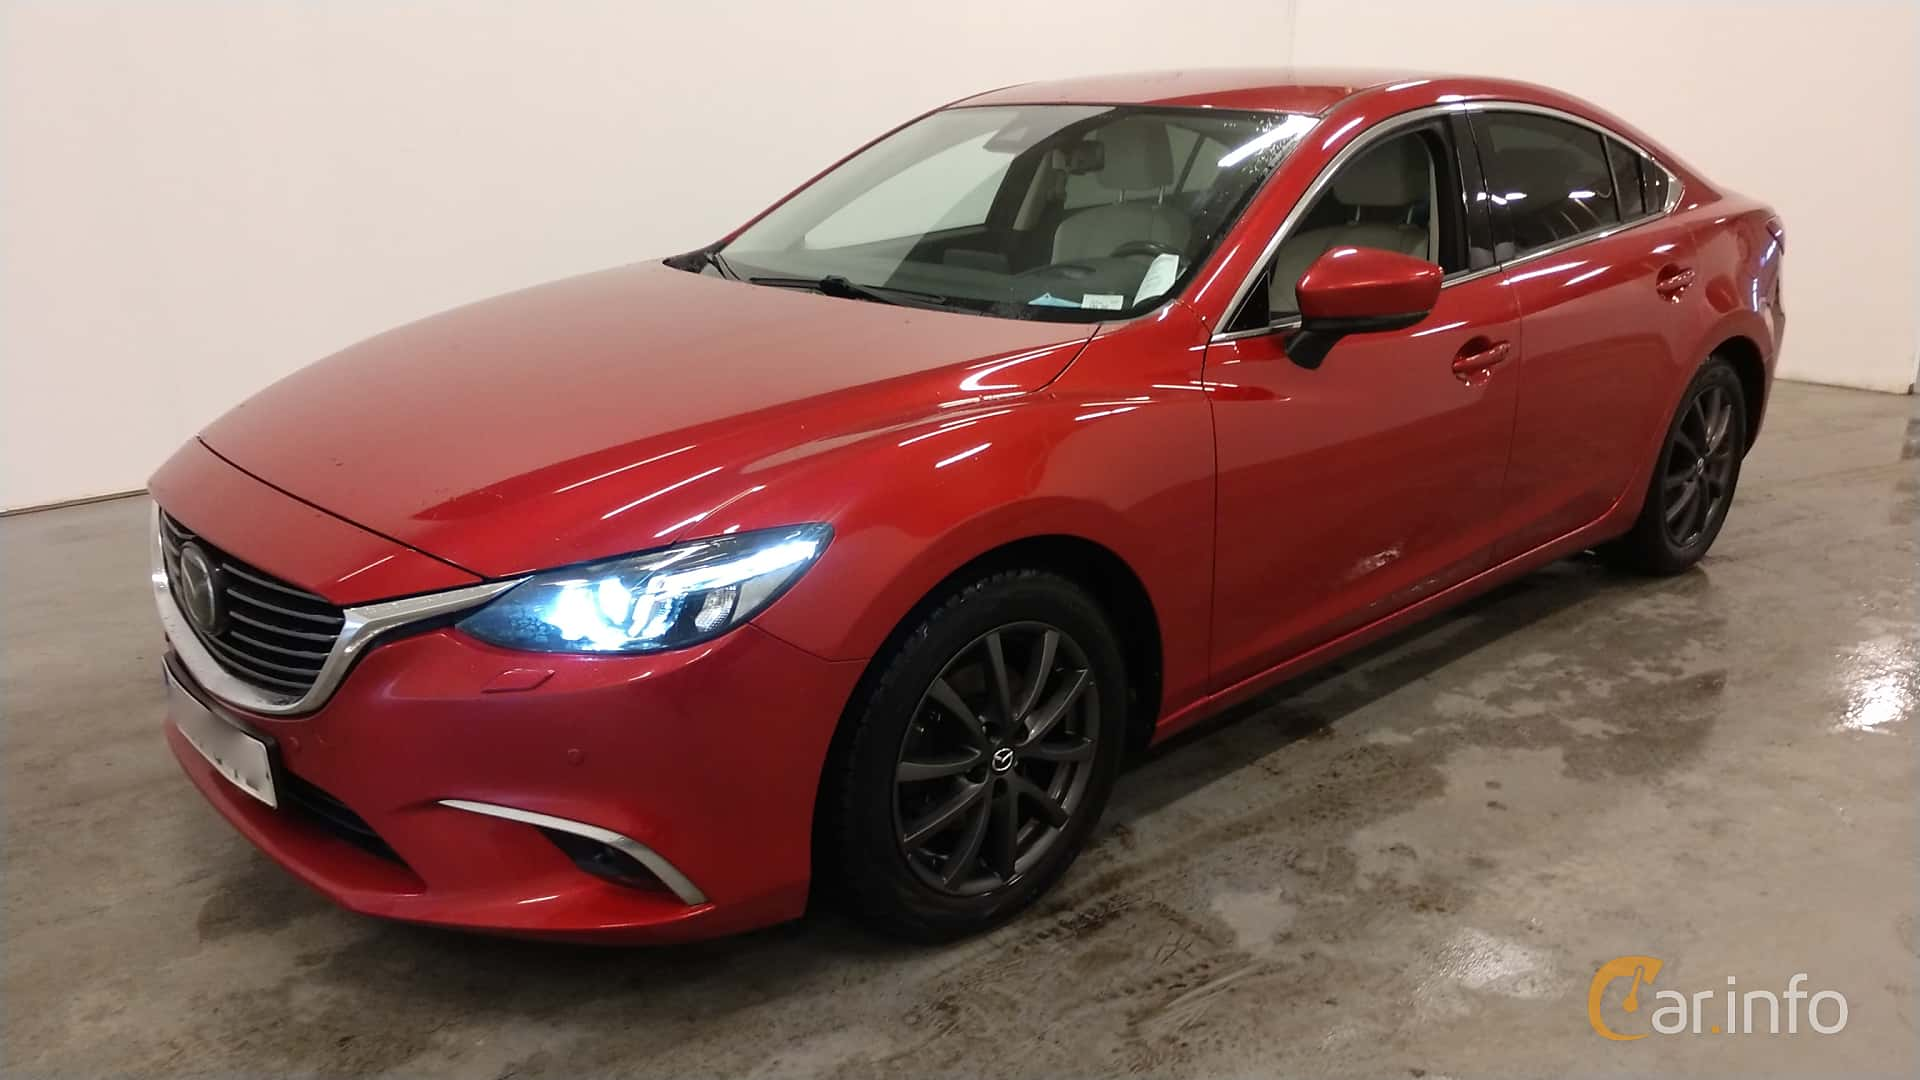 Mazda 6 Sedan 2.5 SKYACTIV-G Automatic, 192hp, 2017